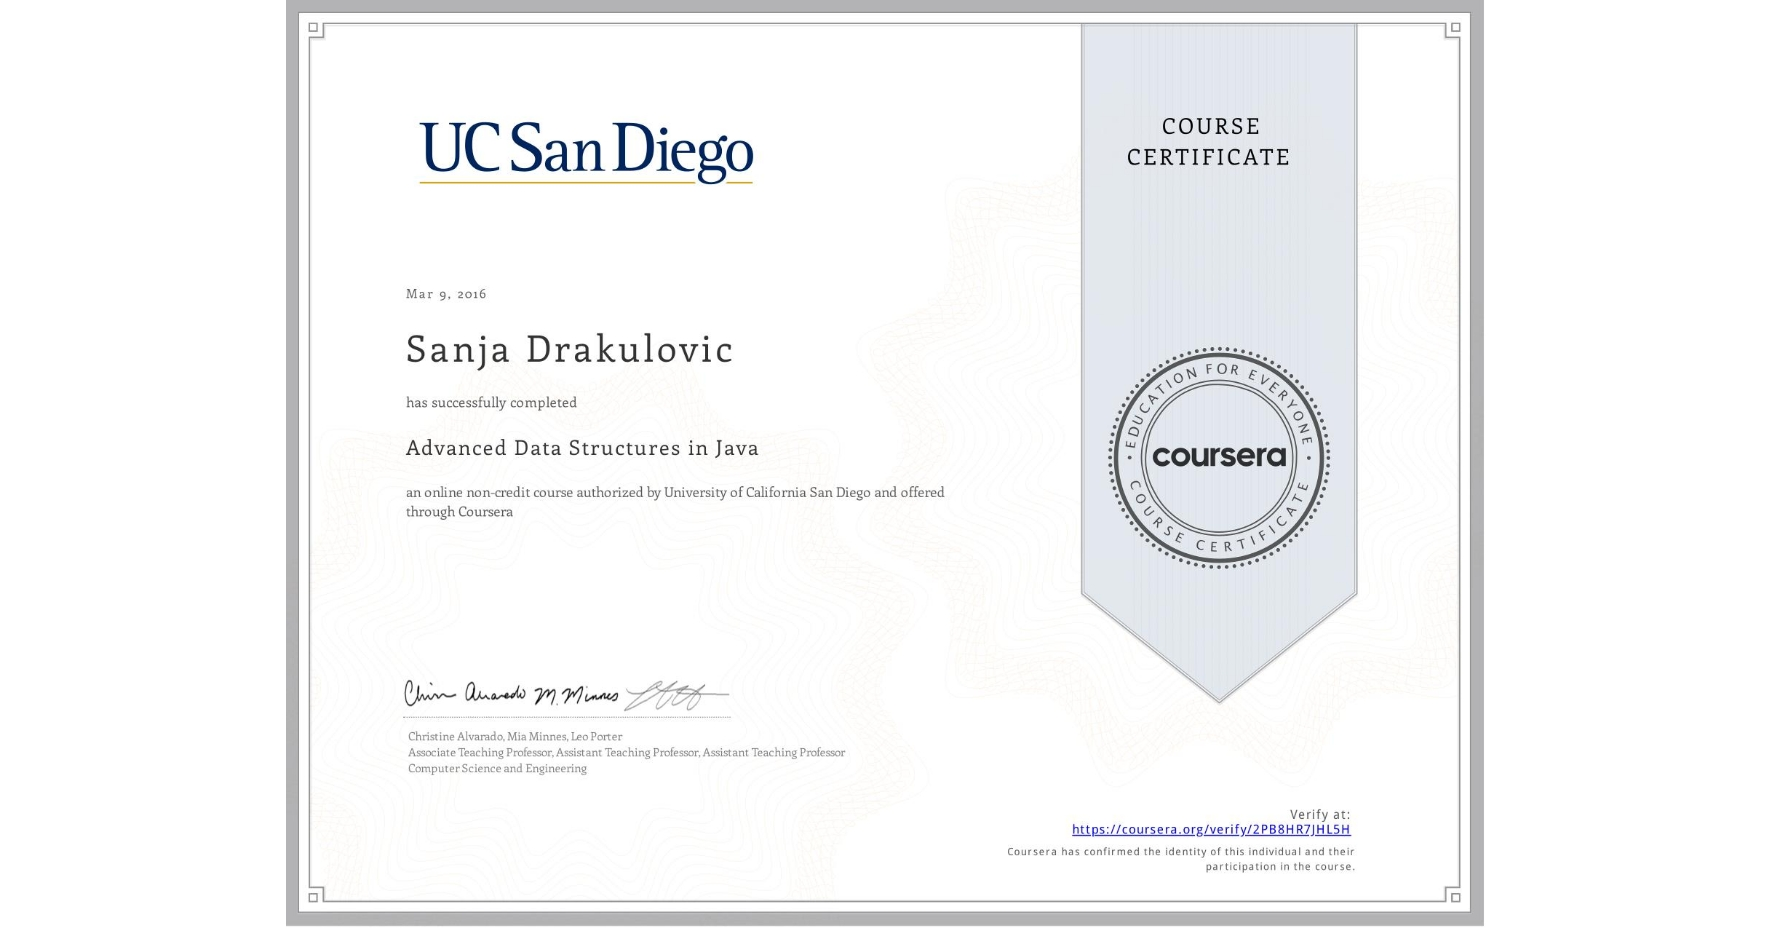 View certificate for Sanja Drakulovic, Advanced Data Structures in Java, an online non-credit course authorized by University of California San Diego and offered through Coursera